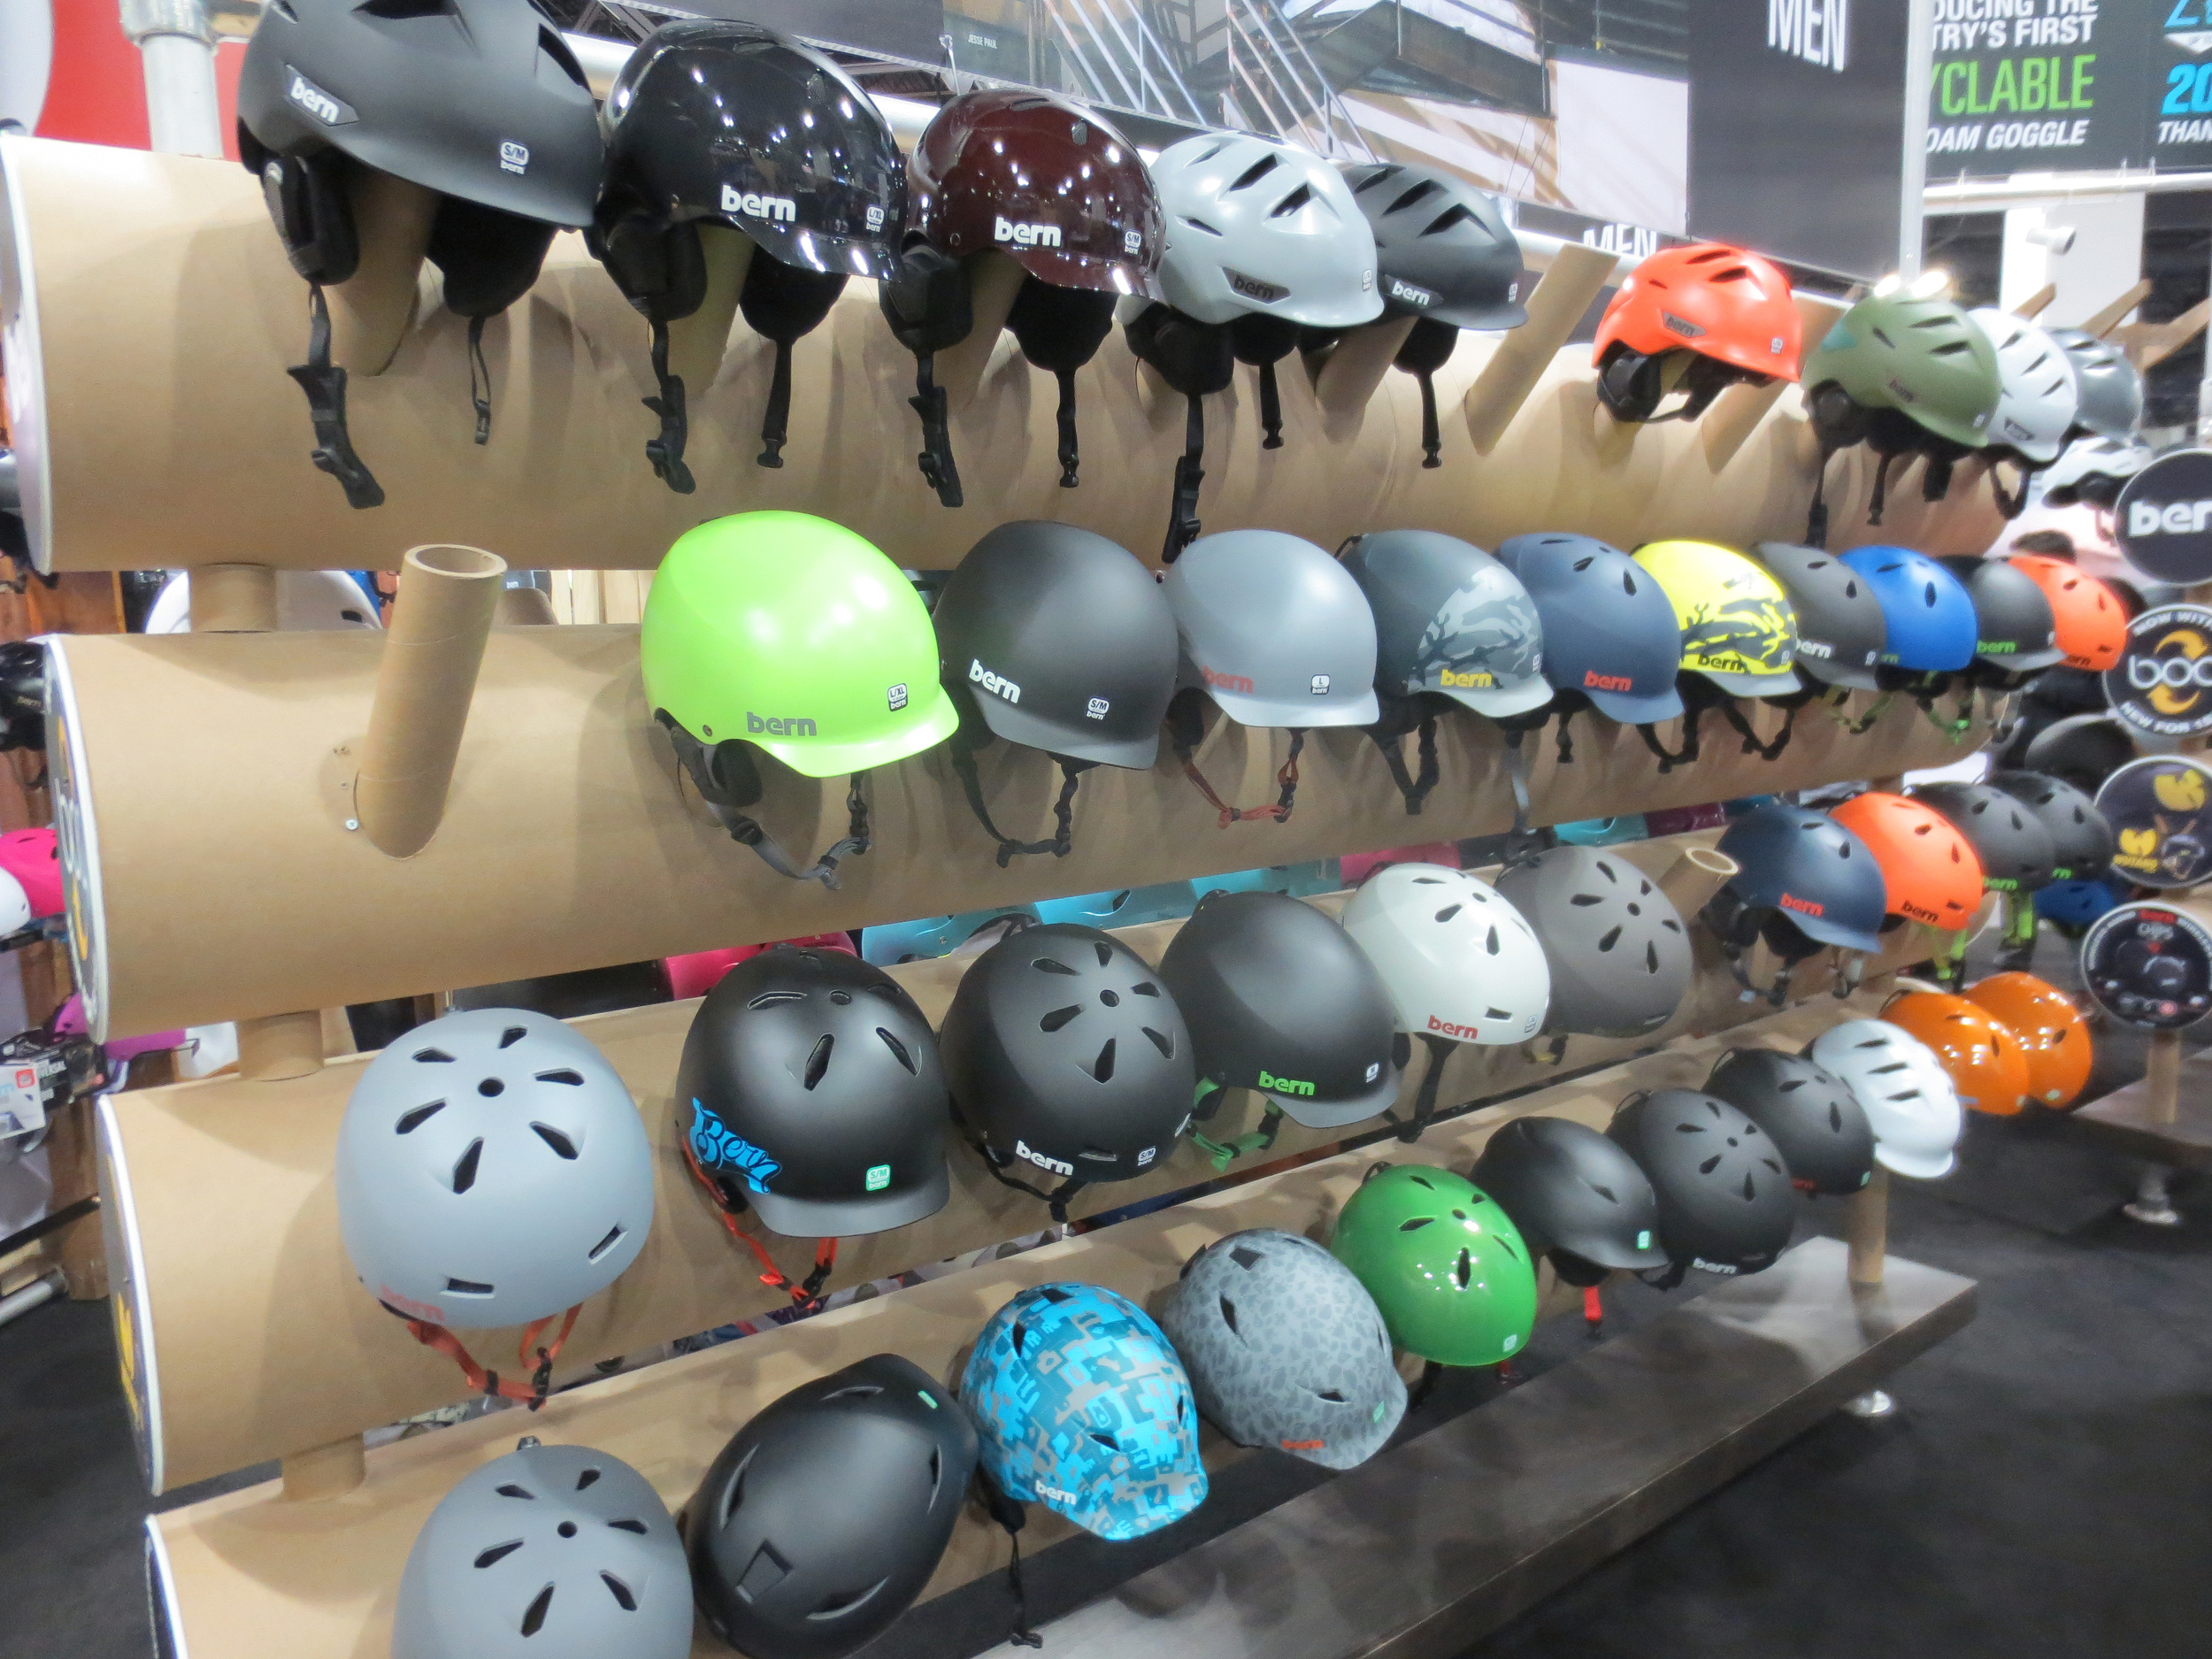 Bern has more helmet options than you can shake a stick at.